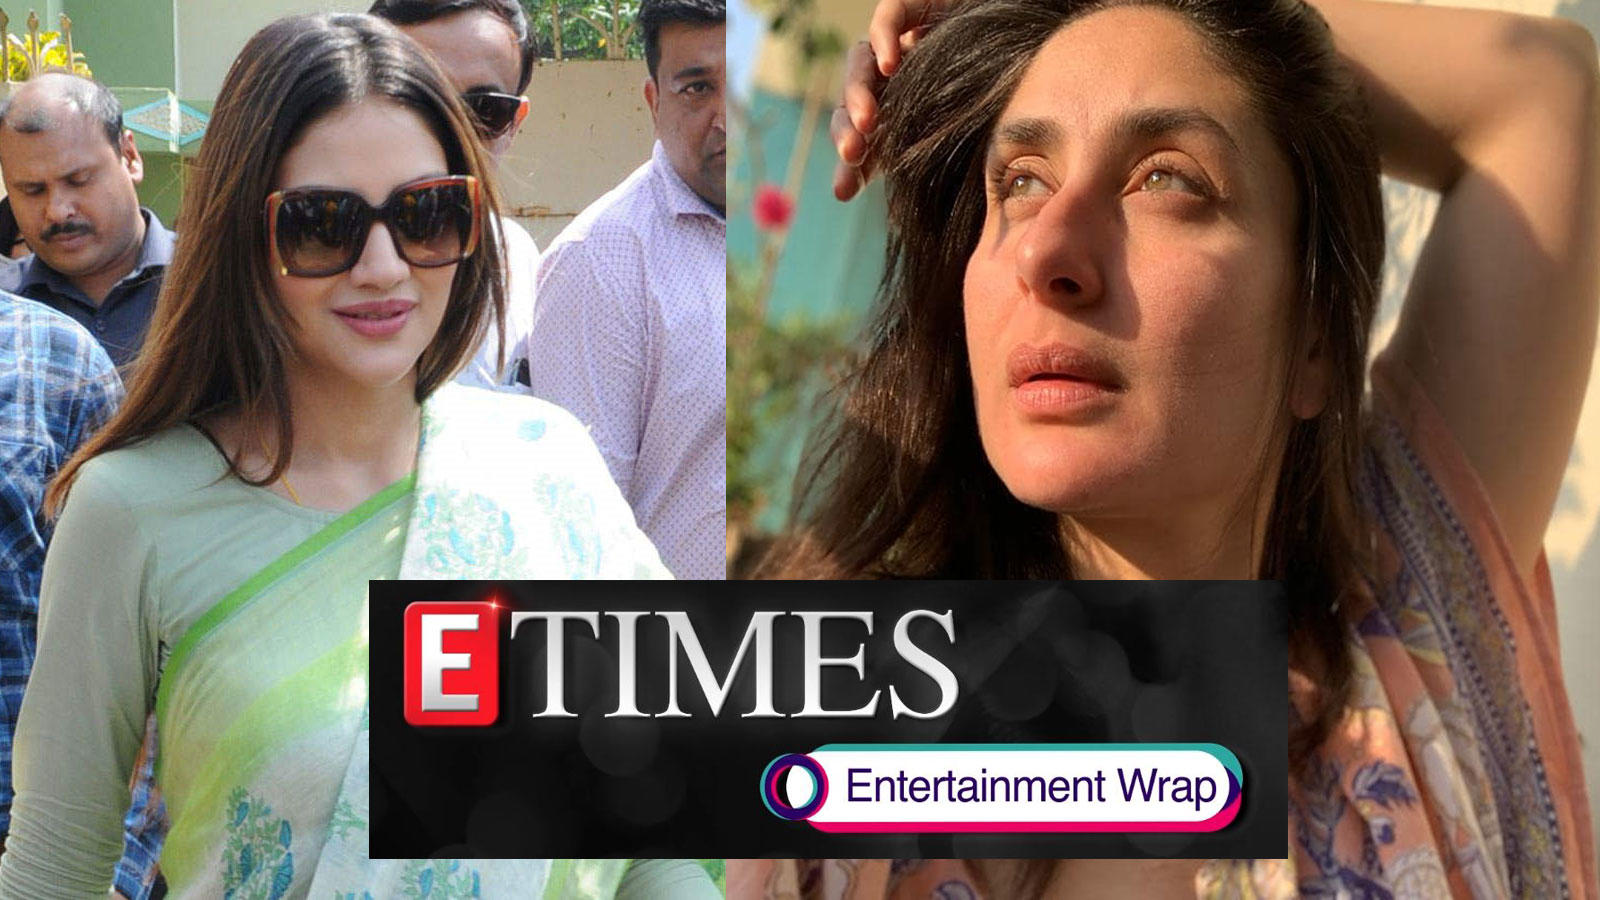 actress-mp-nusrat-jahan-urges-people-not-to-indulge-in-politics-and-casteism-amid-coronavirus-outbreak-kareena-kapoor-shares-a-beautiful-sun-kissed-selfie-and-more-